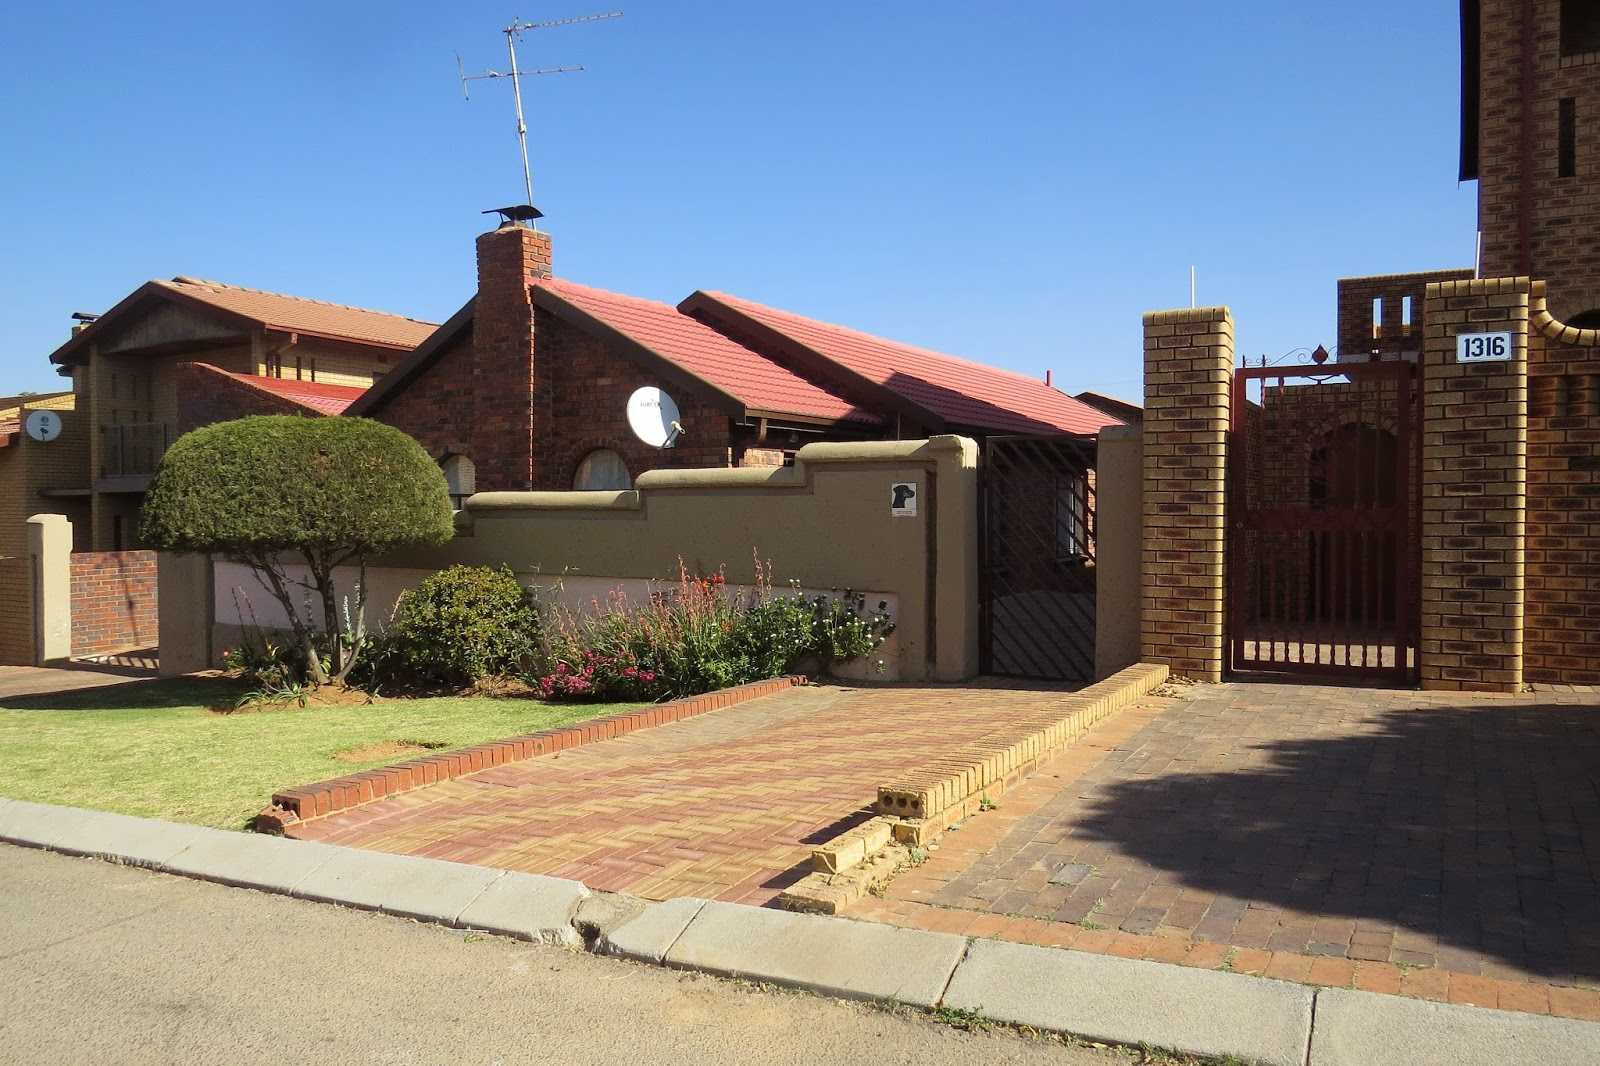 Dr phelan i presume soweto south africa s largest and for Best houses in south africa pictures